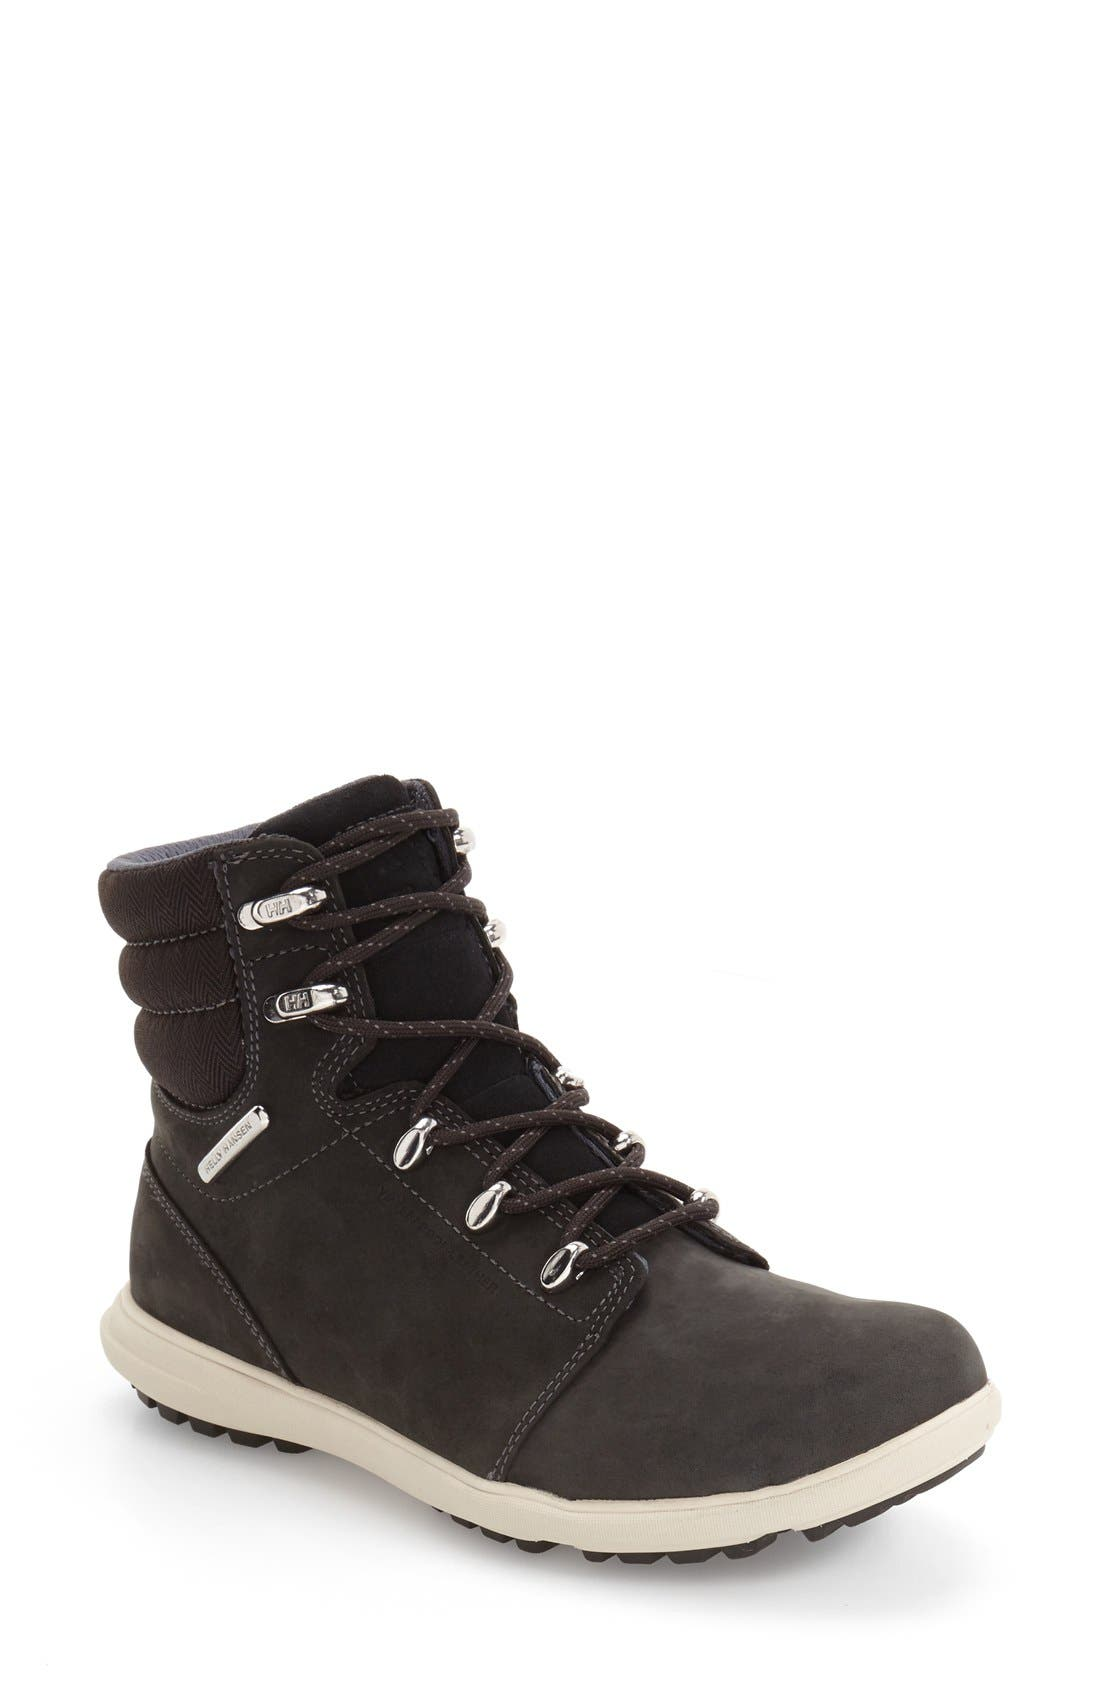 Helly Hansen 'W.A.S.T 2' Waterproof Hiker Boot (Women)